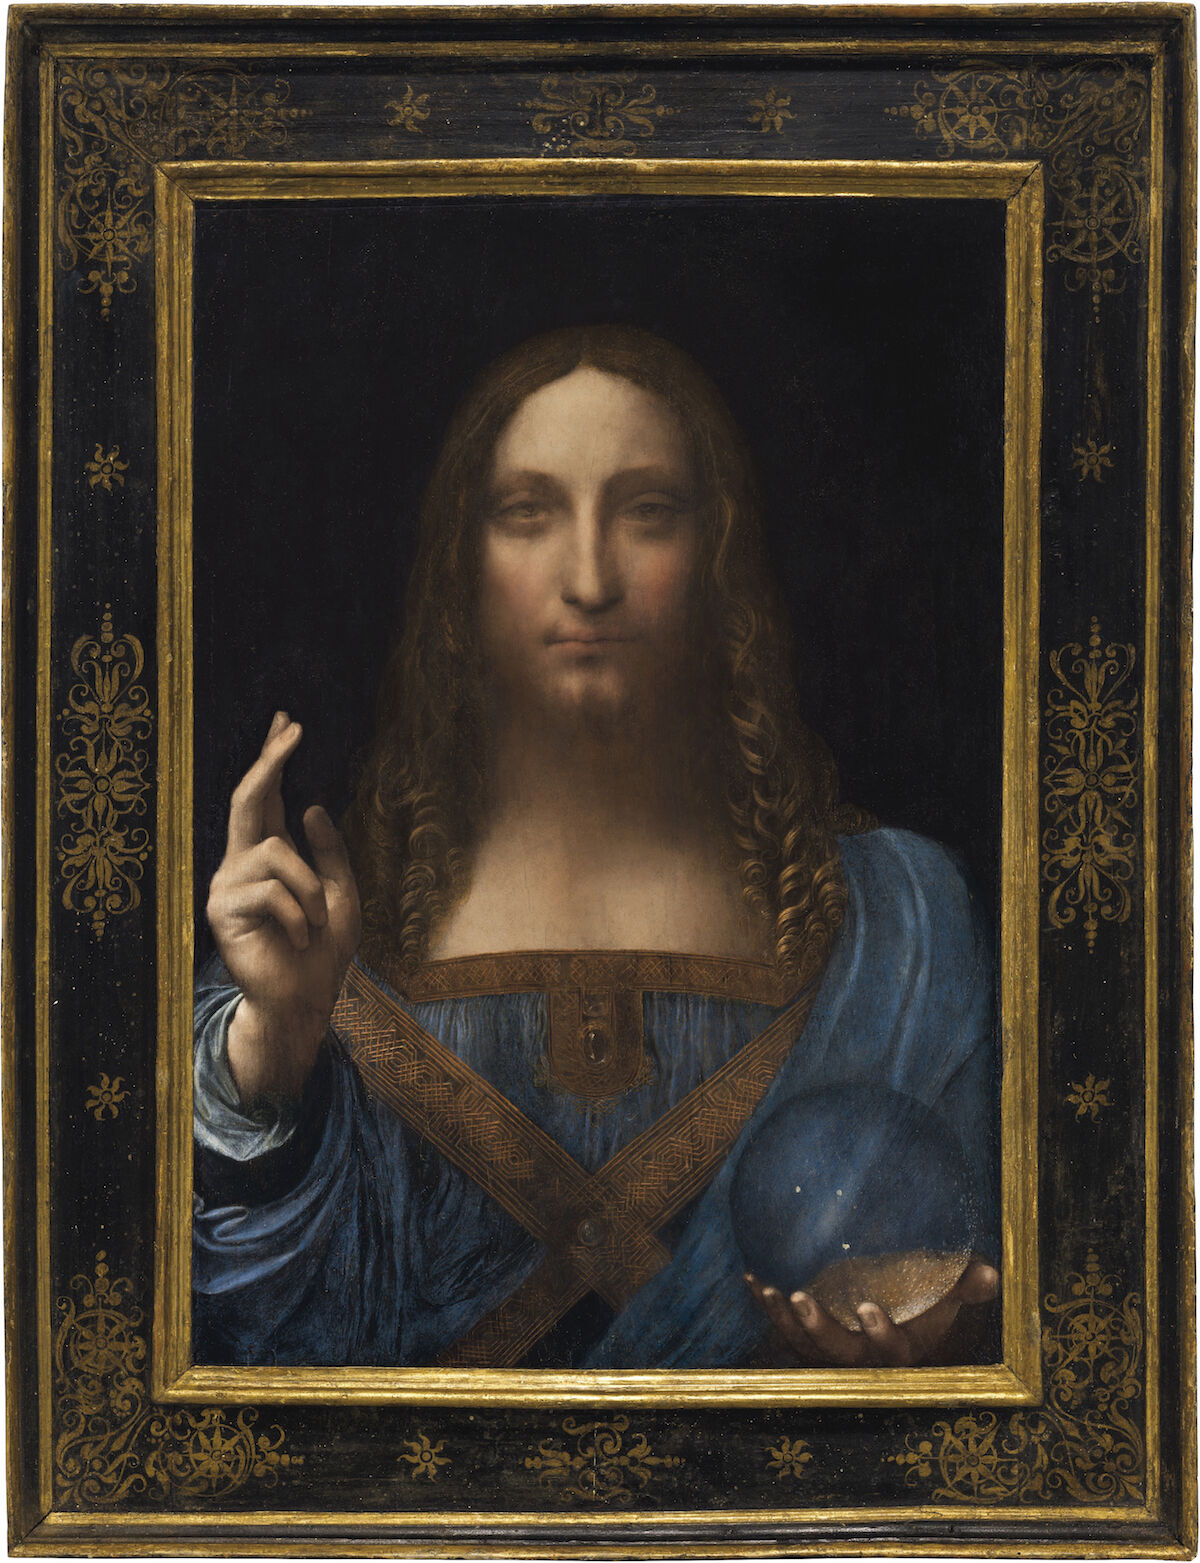 Leonardo da Vinci, Salvator Mundi, circa 1500. Courtesy Abu Dhabi Tourism and Culture Authority, via Wikimedia Commons.